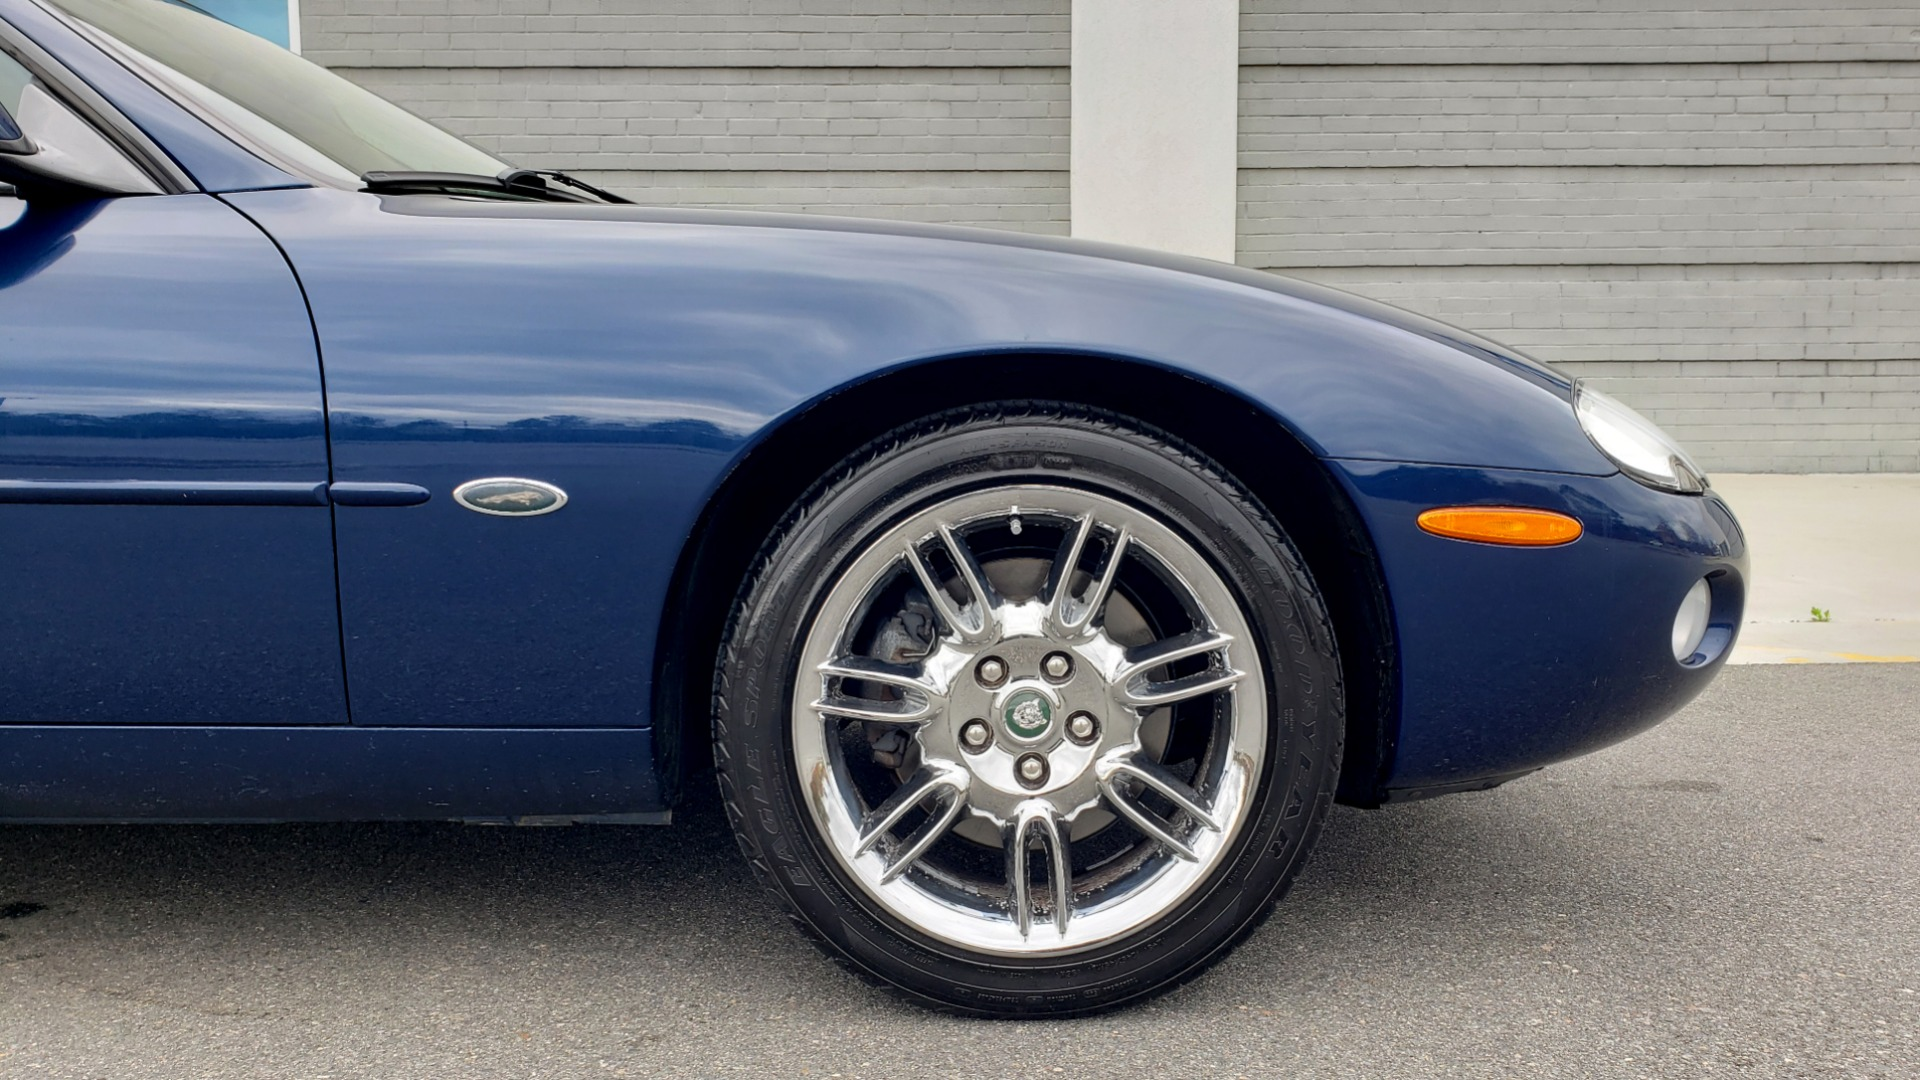 Used 2002 Jaguar XK8 COUPE / 4.0L V8 / 5-SPD AUTO / ALPINE SOUND / 18IN CHROME WHEELS for sale $16,450 at Formula Imports in Charlotte NC 28227 75